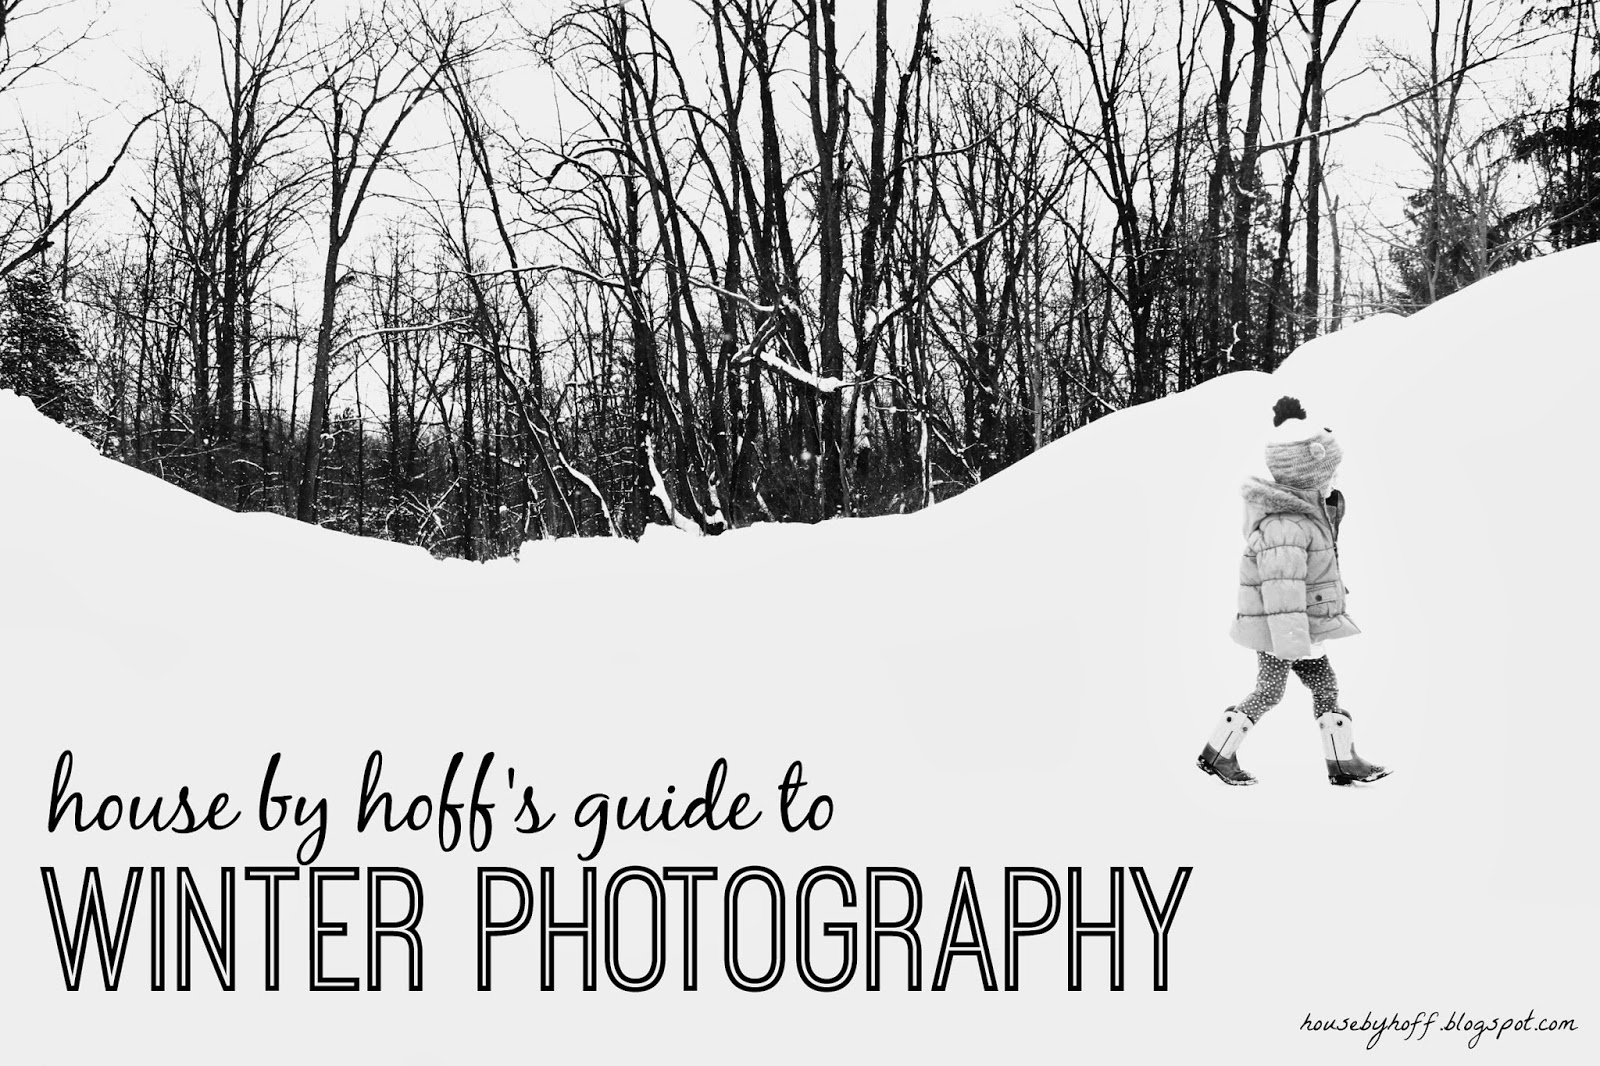 Photography Wednesday: A Guide to Winter Photography